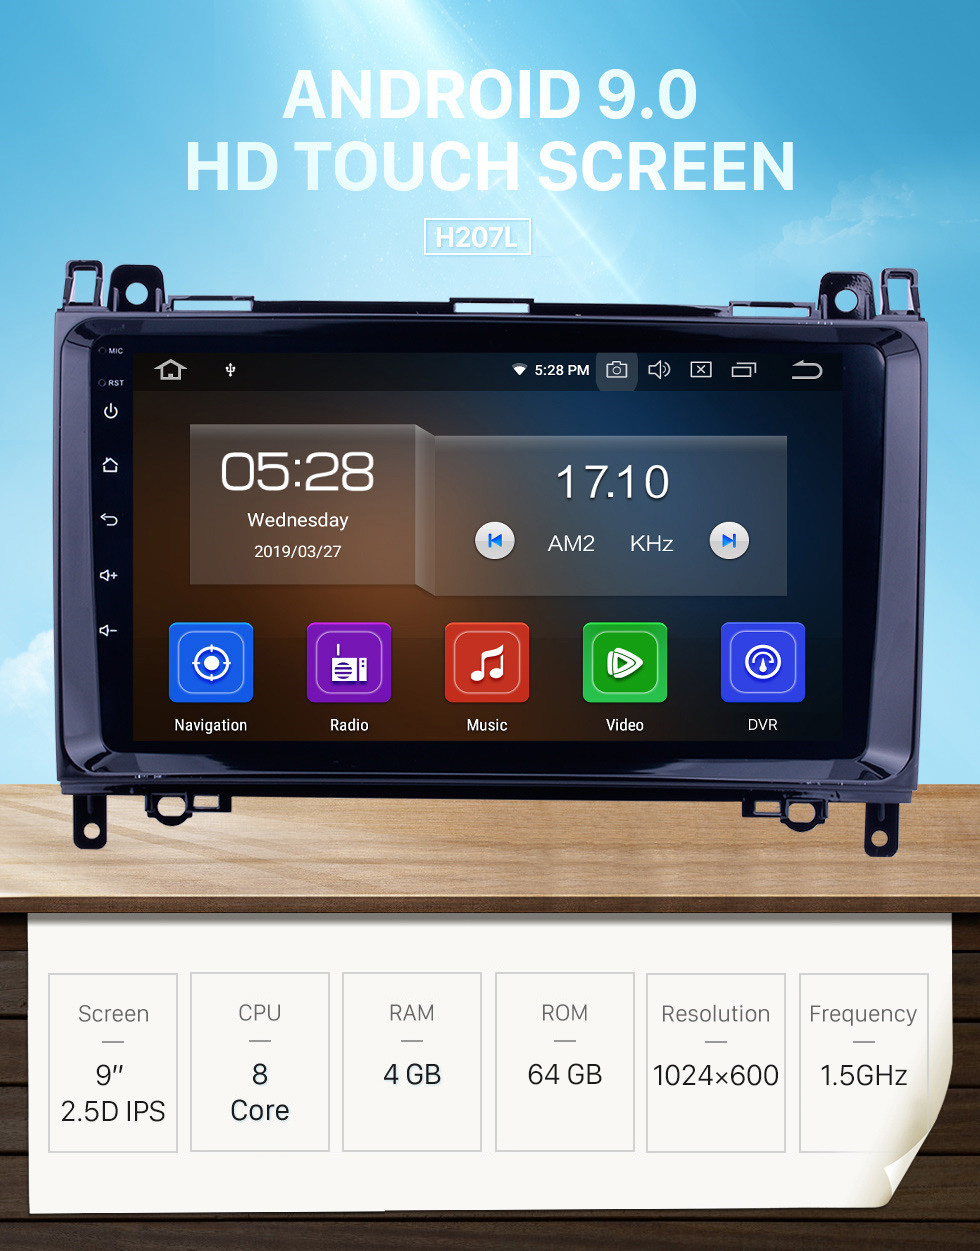 Seicane 9 inch HD 1024*600 Touch Screen Android 9.0 2006-2012 Mercedes Benz Sprinter 211 213 216 218 224 309 311 313 315 316 CDI Autoradio Navigation Head Unit with CD DVD Player Bluetooth AUX 3G WiFi HD 1080P OBD2 Mirror Link Backup Camera